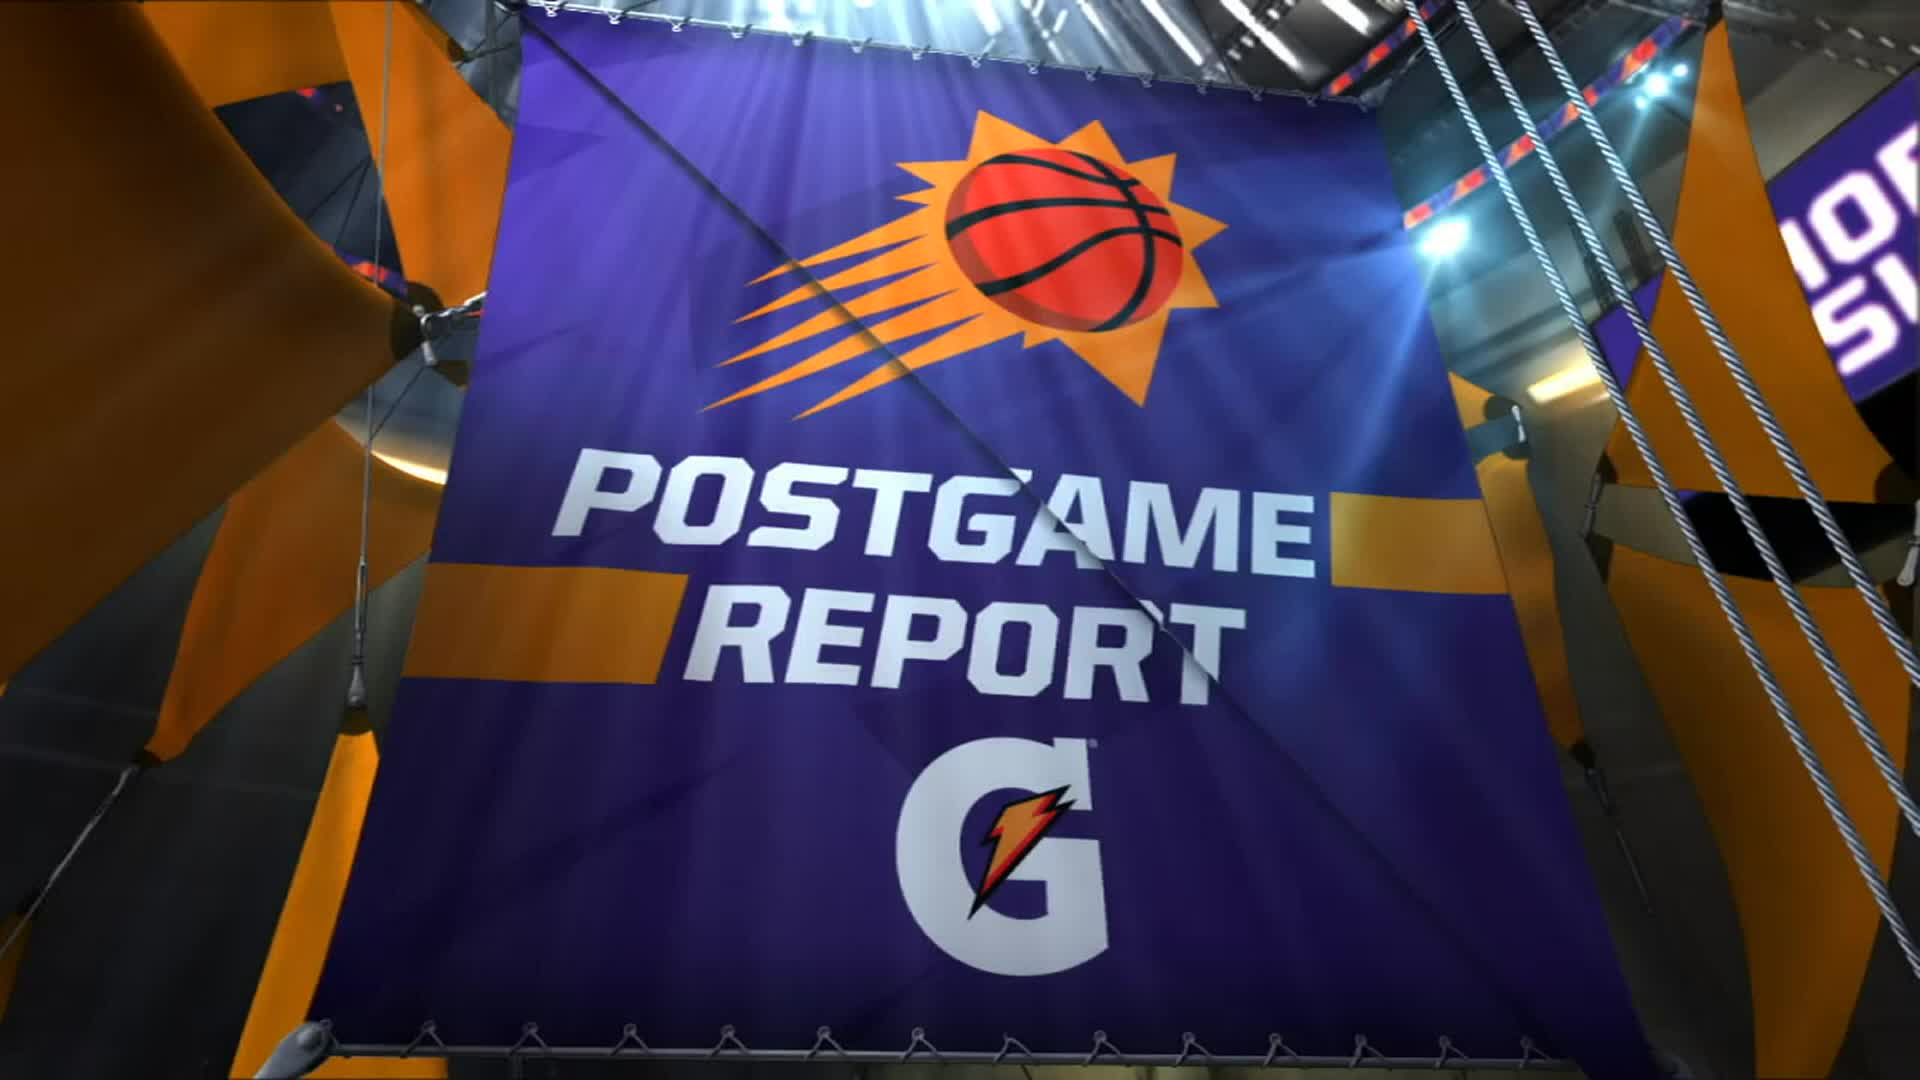 Gatorade Postgame Report: Suns vs. Wizards 2020-21